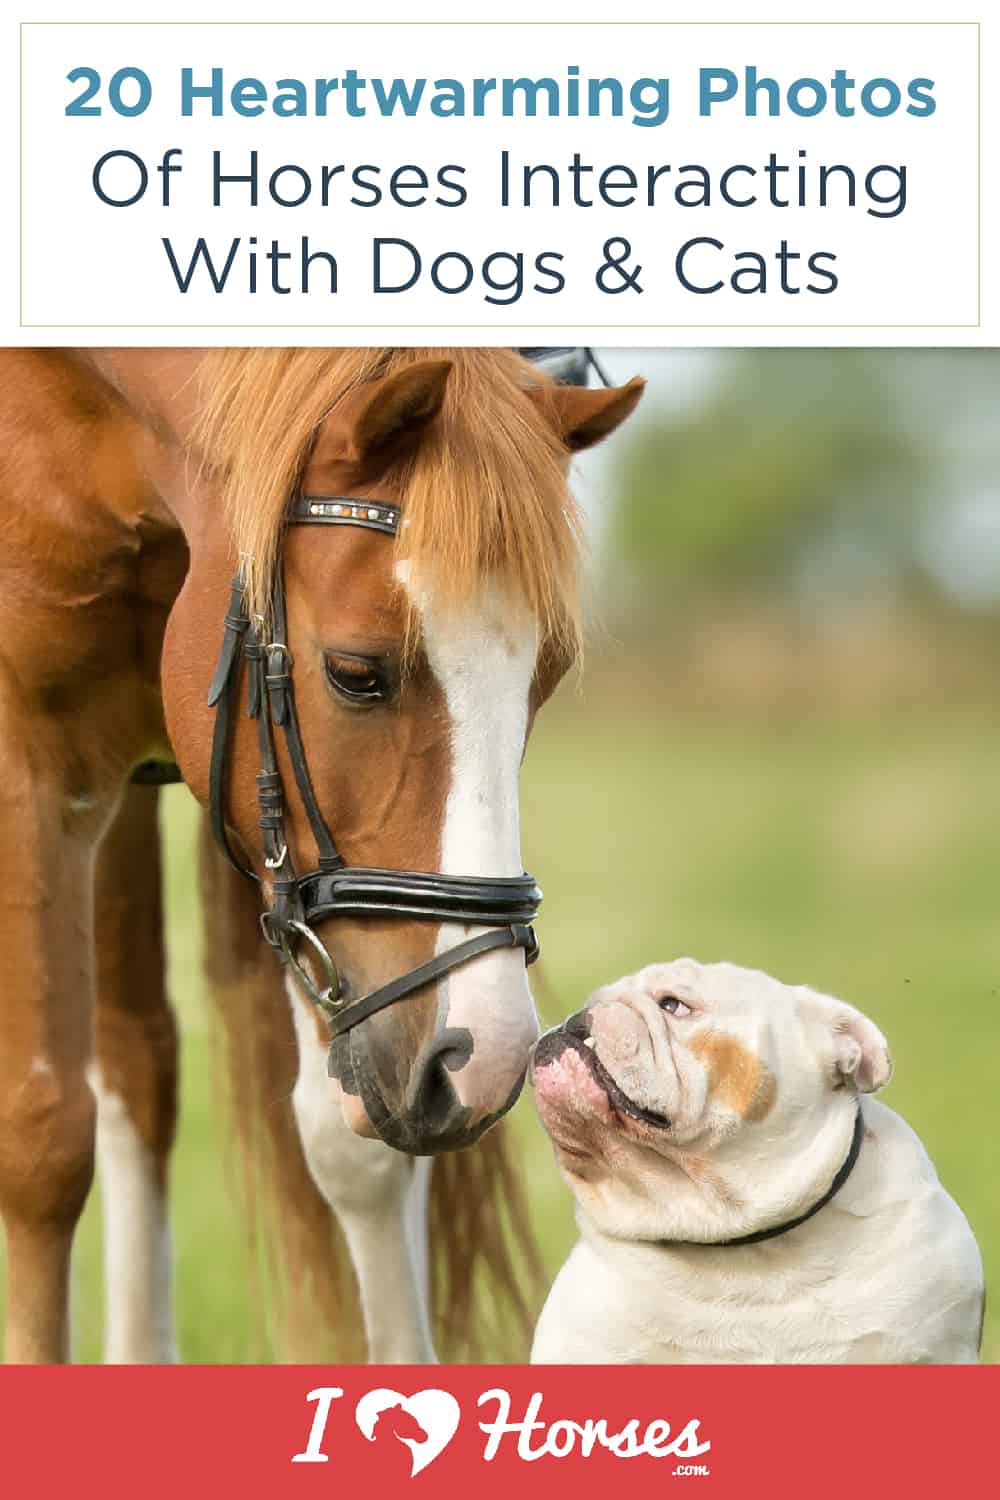 20 Adorable Photos Of Horses With Dogs & Cats-02